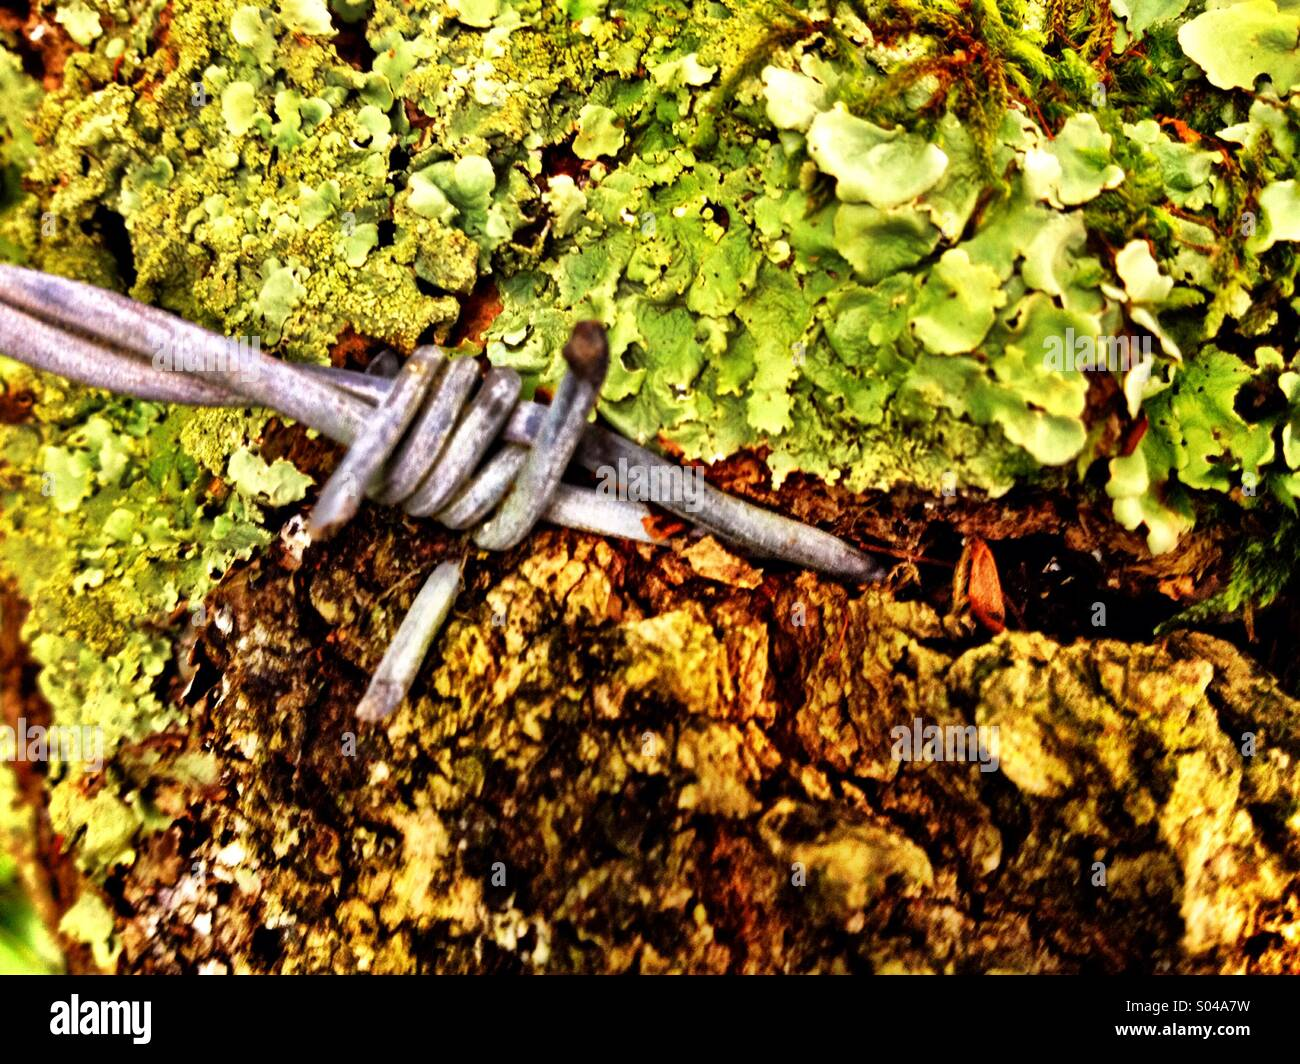 Barbed wire embedded in tree - Stock Image